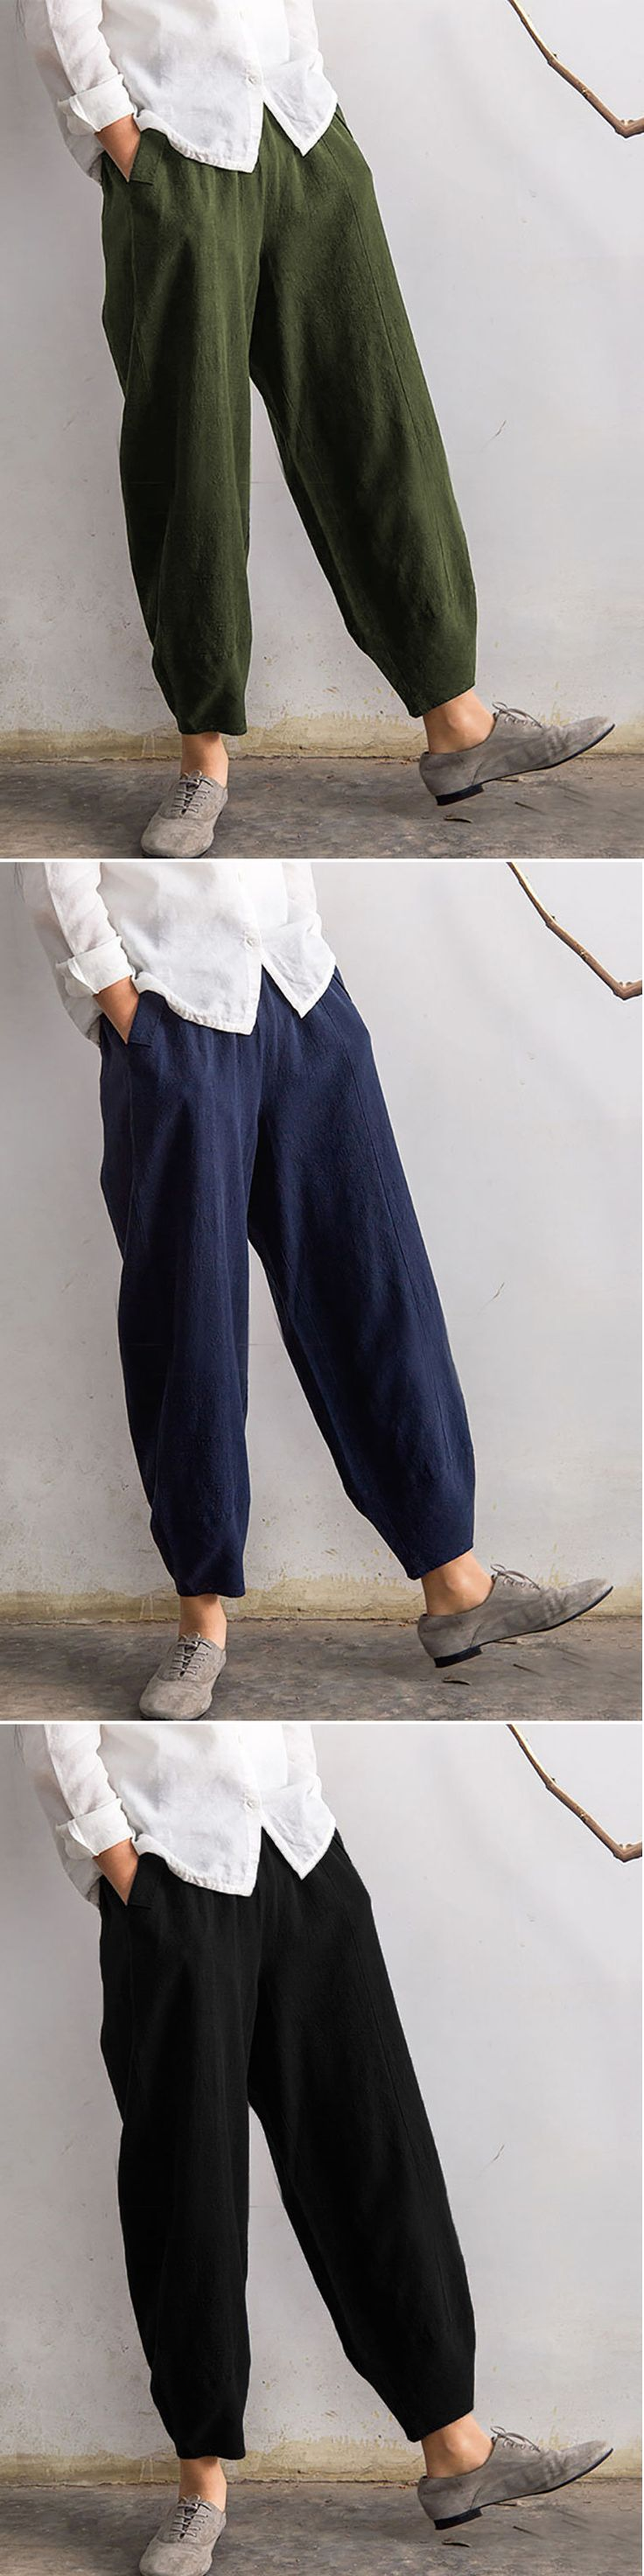 O-NEWE Vintage Elastic Waist Pure Color Pocket Pants For Women